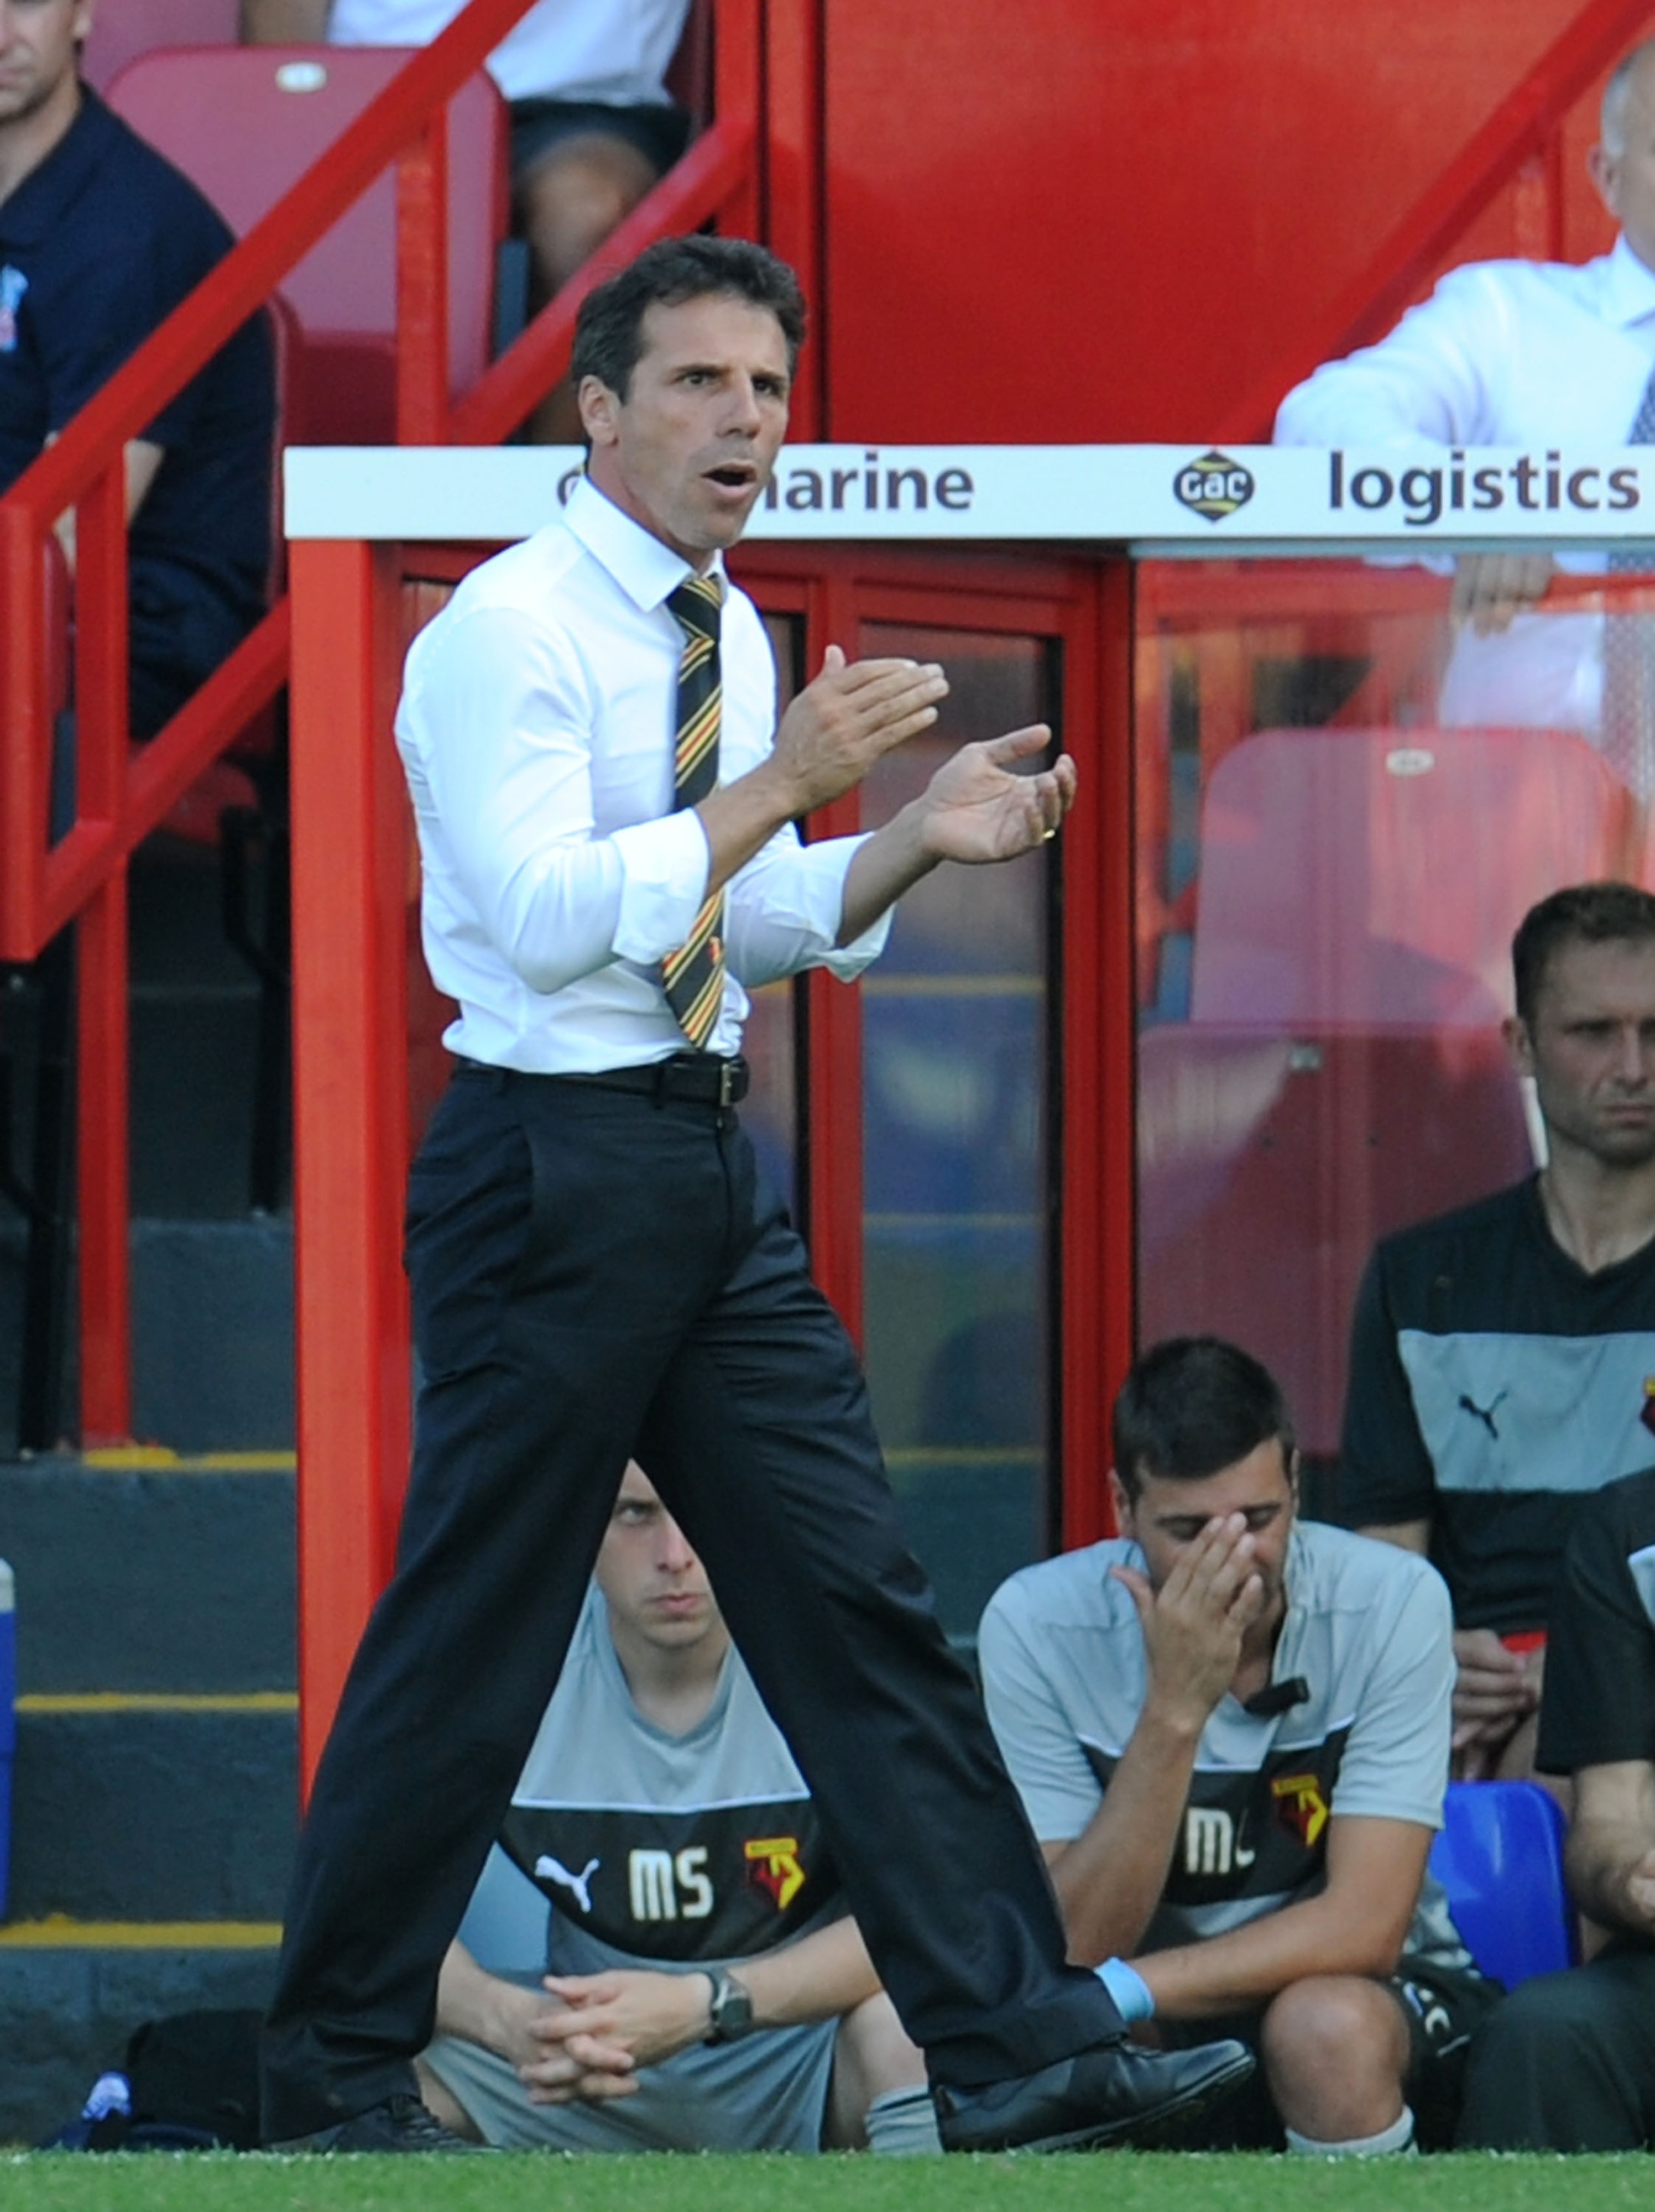 LONDON, ENGLAND - 18 AUGUST: Manager of Watford Gianfranco Zola during the npower Championship match between Crystal Palace and Watford at Selhurst Park on August 18, 2012 in London, England. (Photo by Tom Dulat/Getty Images)